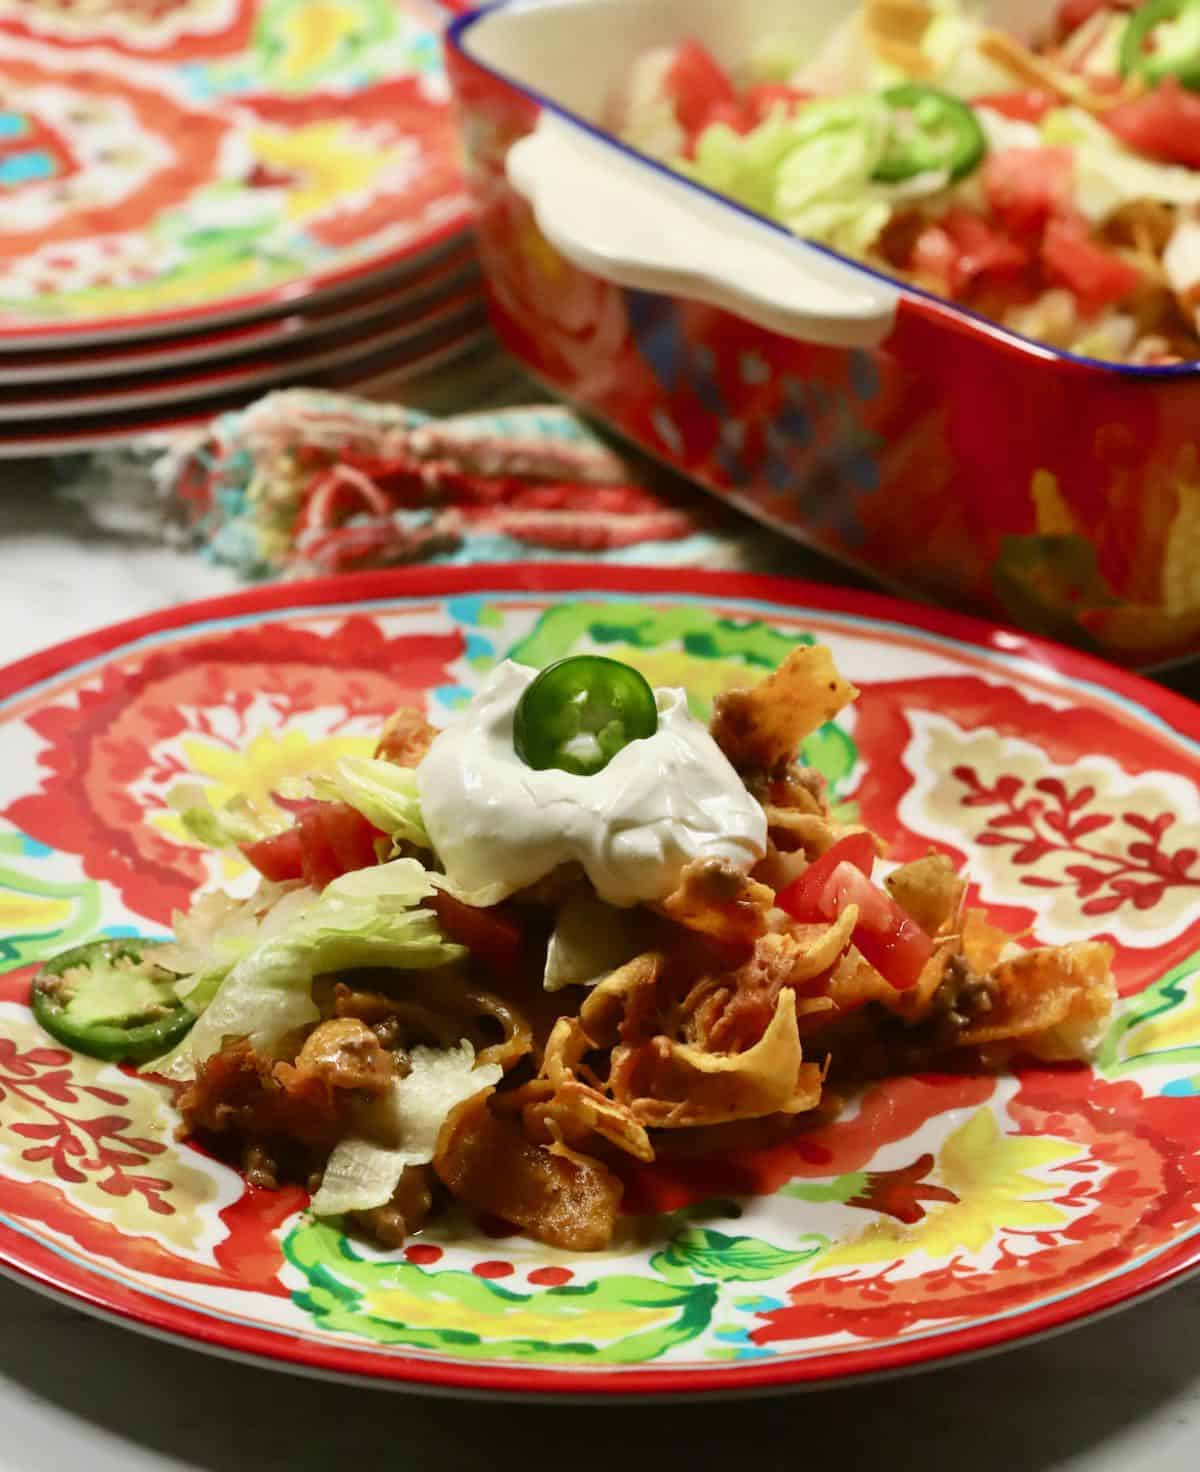 A brightly colored Mexican plate with a serving of taco casserole.